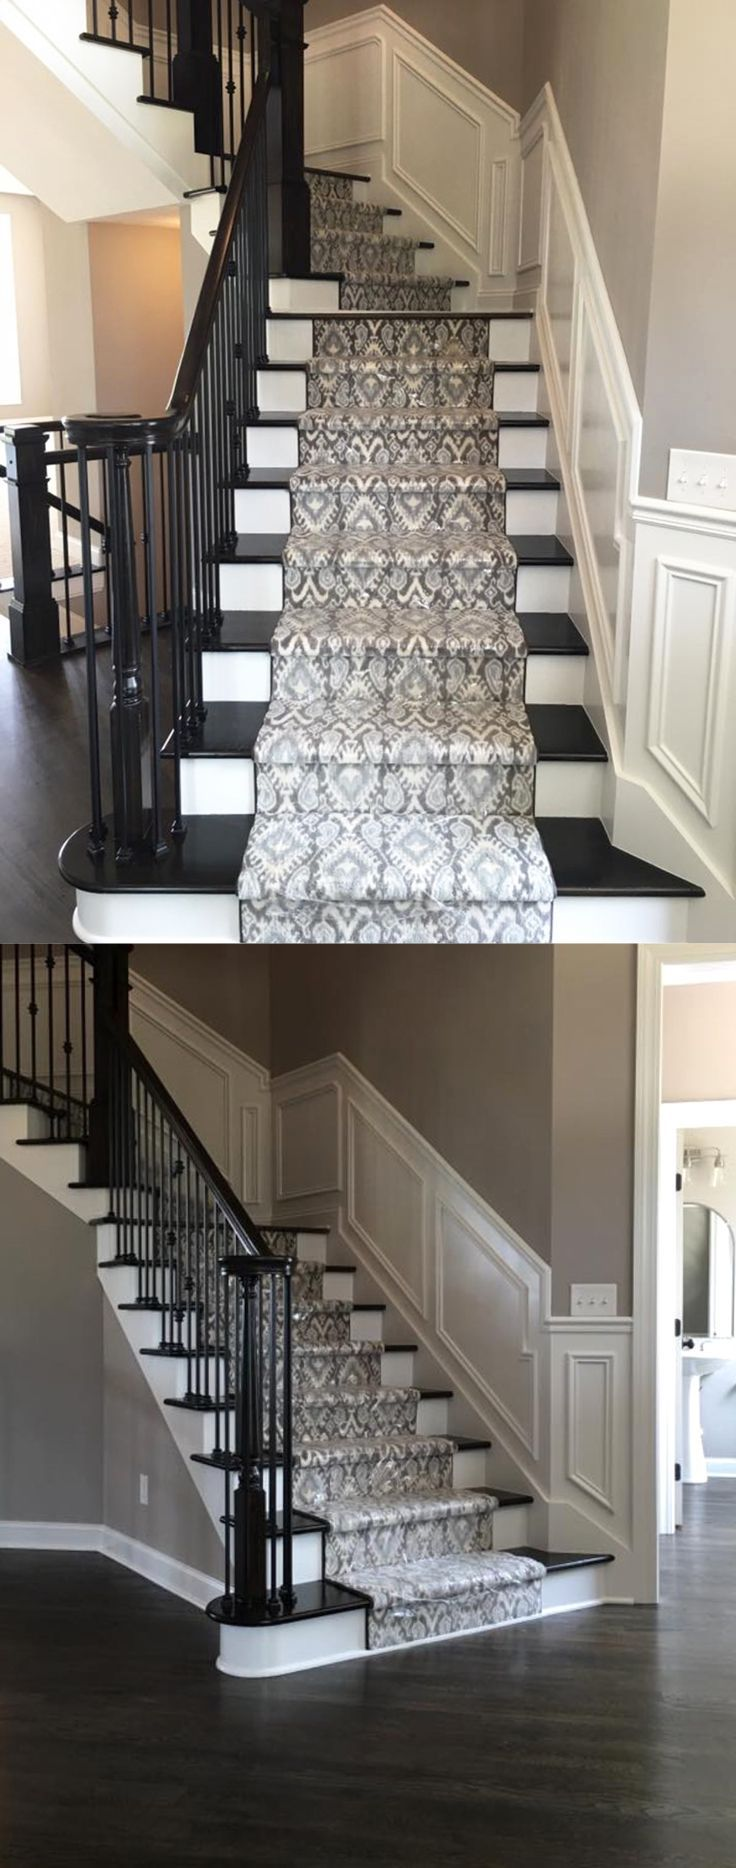 Best Beautiful Patterned Stair Runner On Dark Stained Stairs 400 x 300